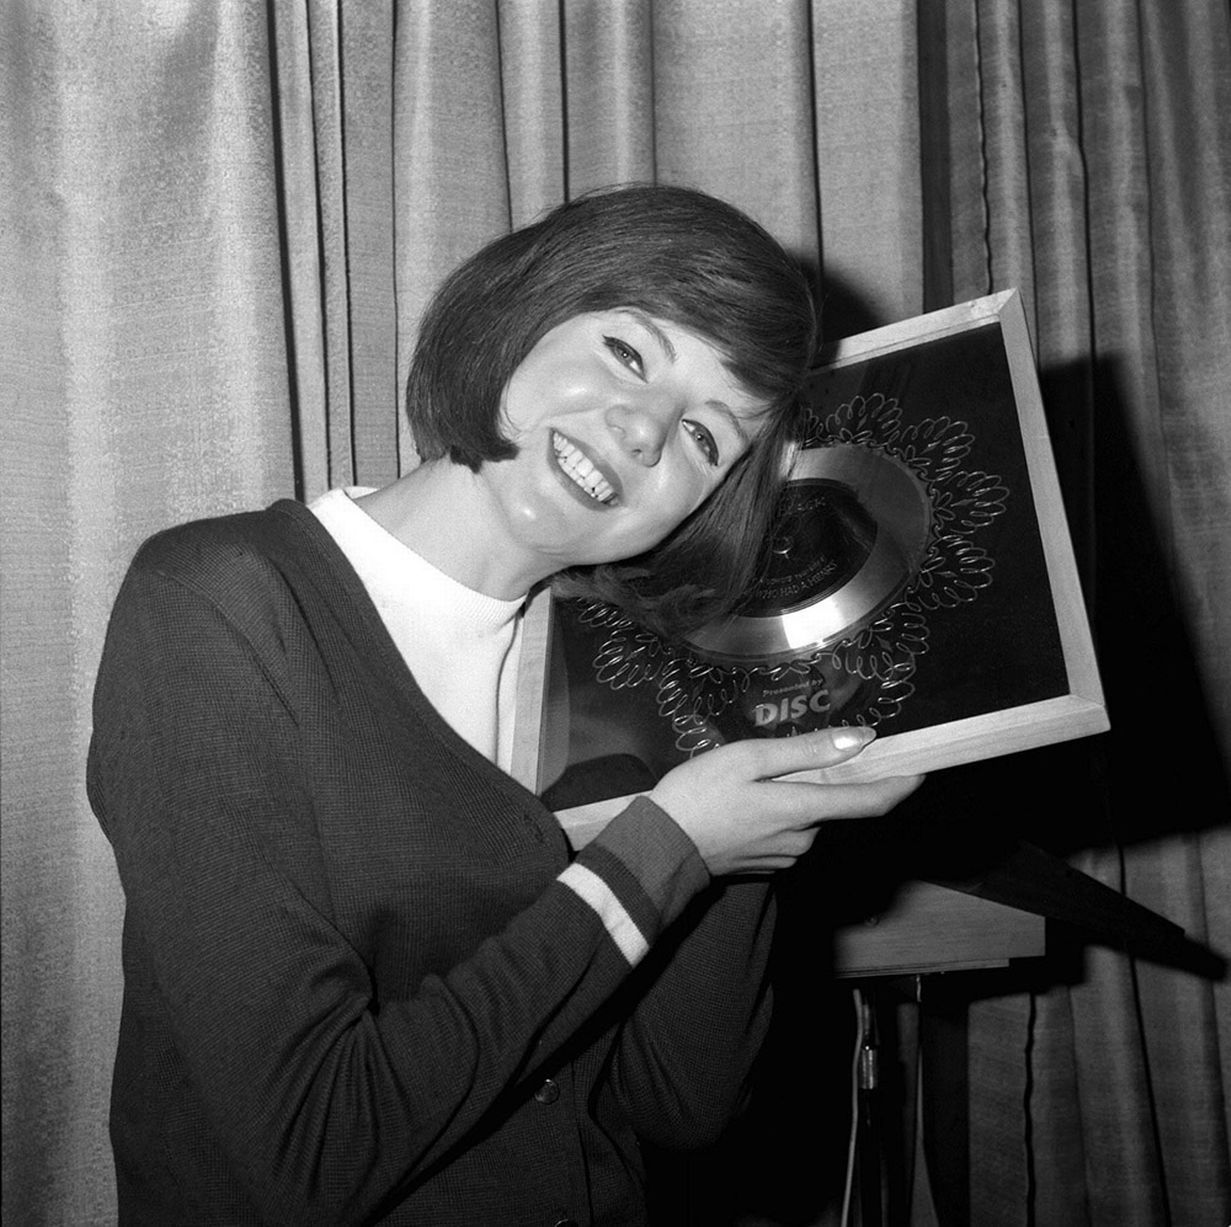 Cilla black with the silver disc awarded for sales of anyone who had cilla black with the silver disc awarded for sales of anyone who had a heart altavistaventures Choice Image